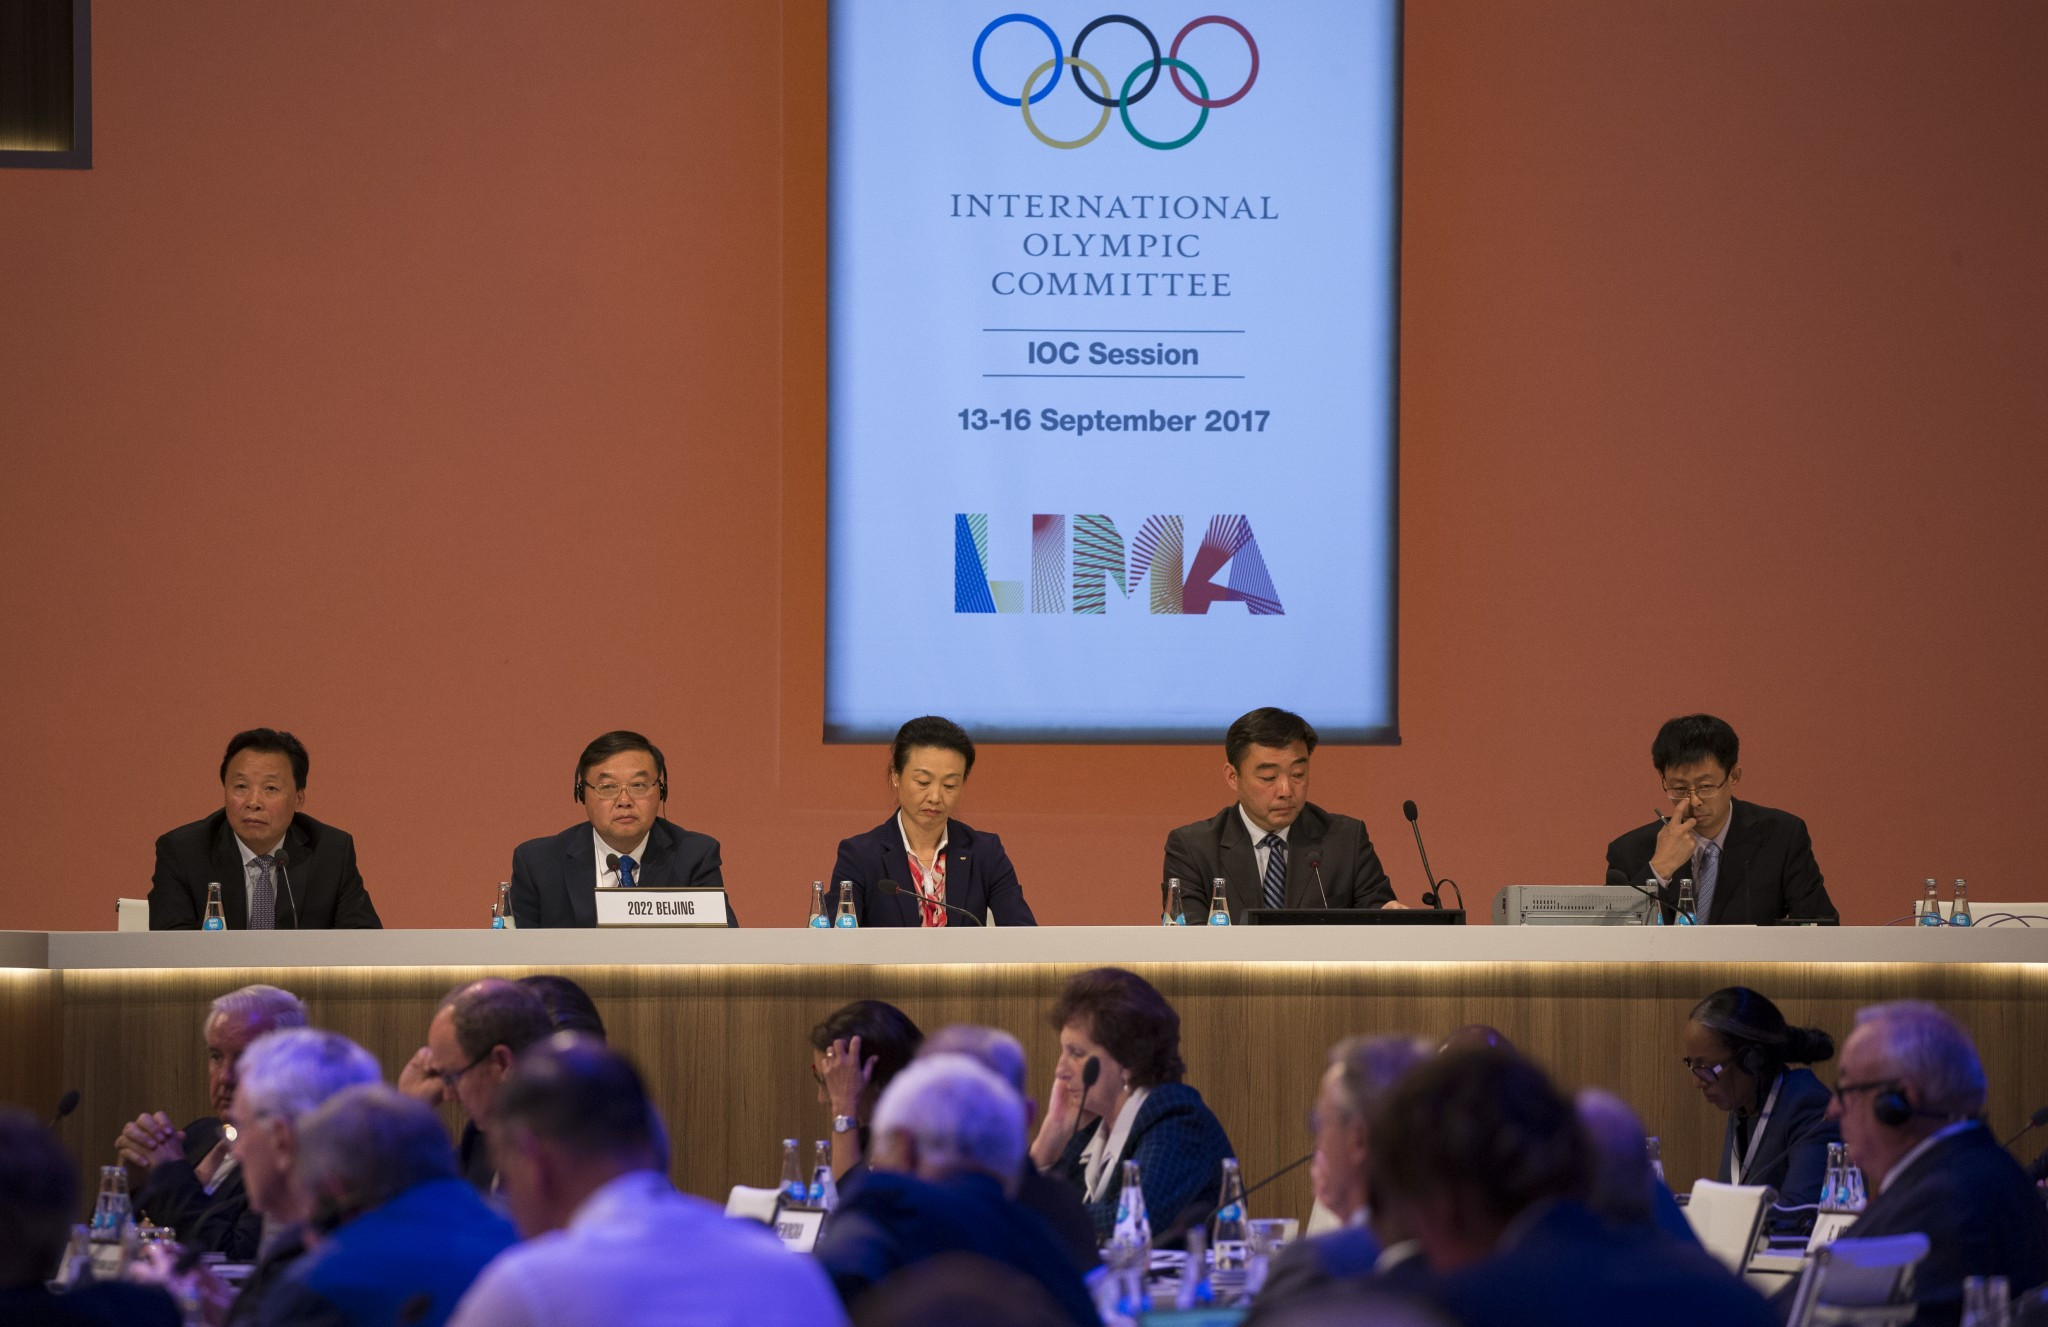 Beijing 2022 were praised for the strong start they have made to their preparations so far ©IOC